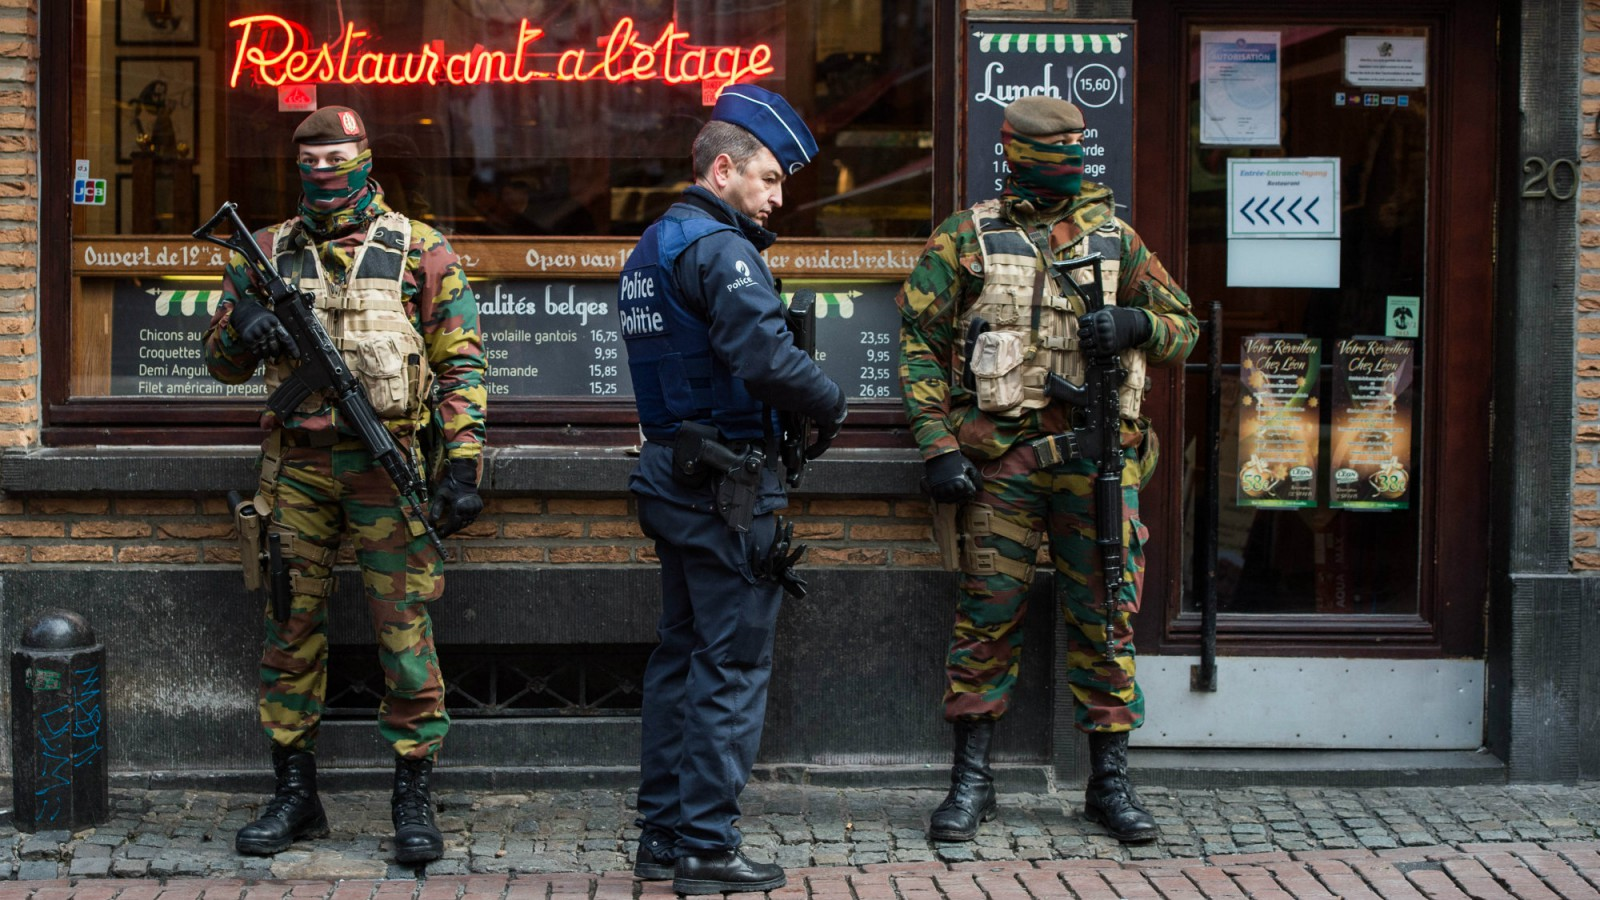 A Police officer and soldiers stand guard in the 'Rue des Bouchers' street, famous for it's restaurants, following the terror alert level being elevated to 4/4, in Brussels, Belgium, 22 November 2015.